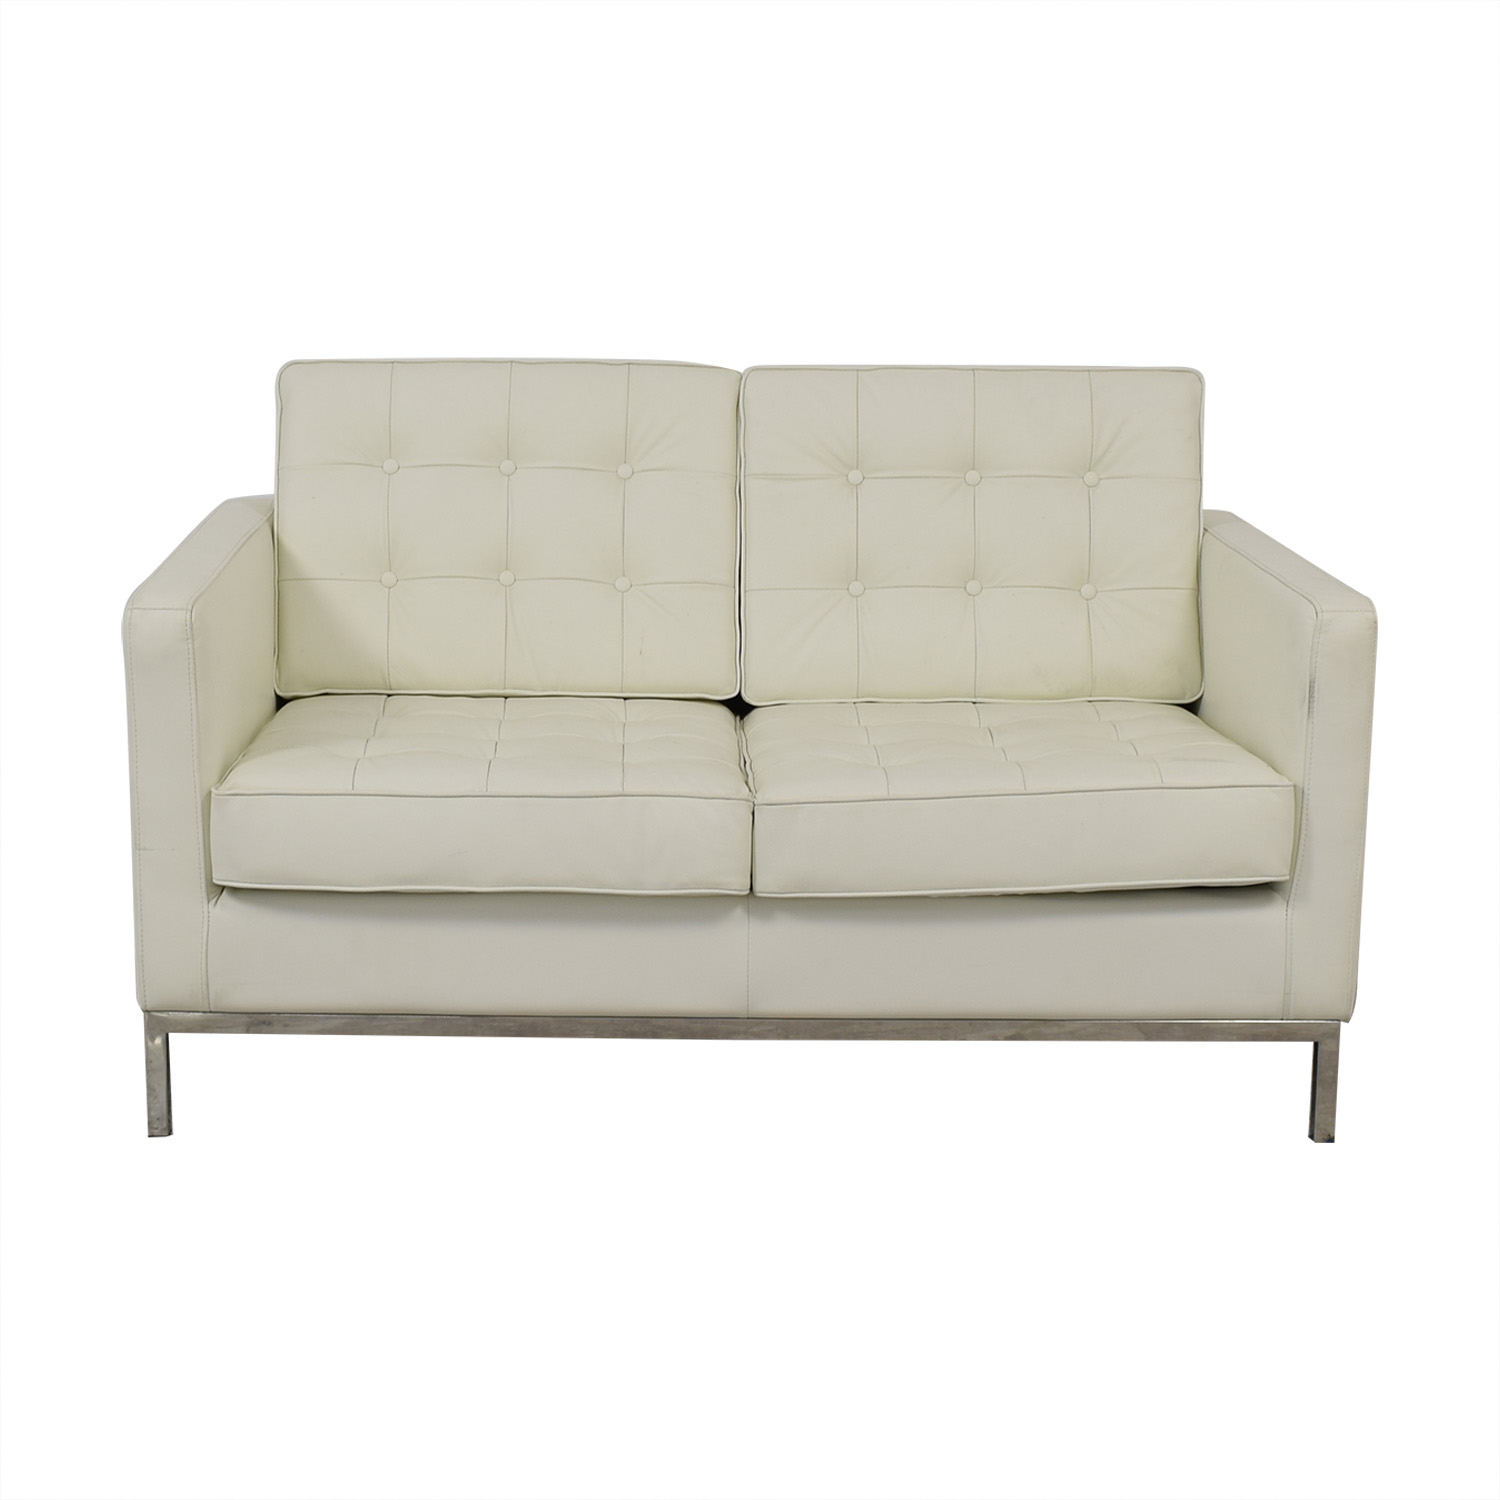 Control Brand Control Brand Mid Century Tufted Loveseat nj